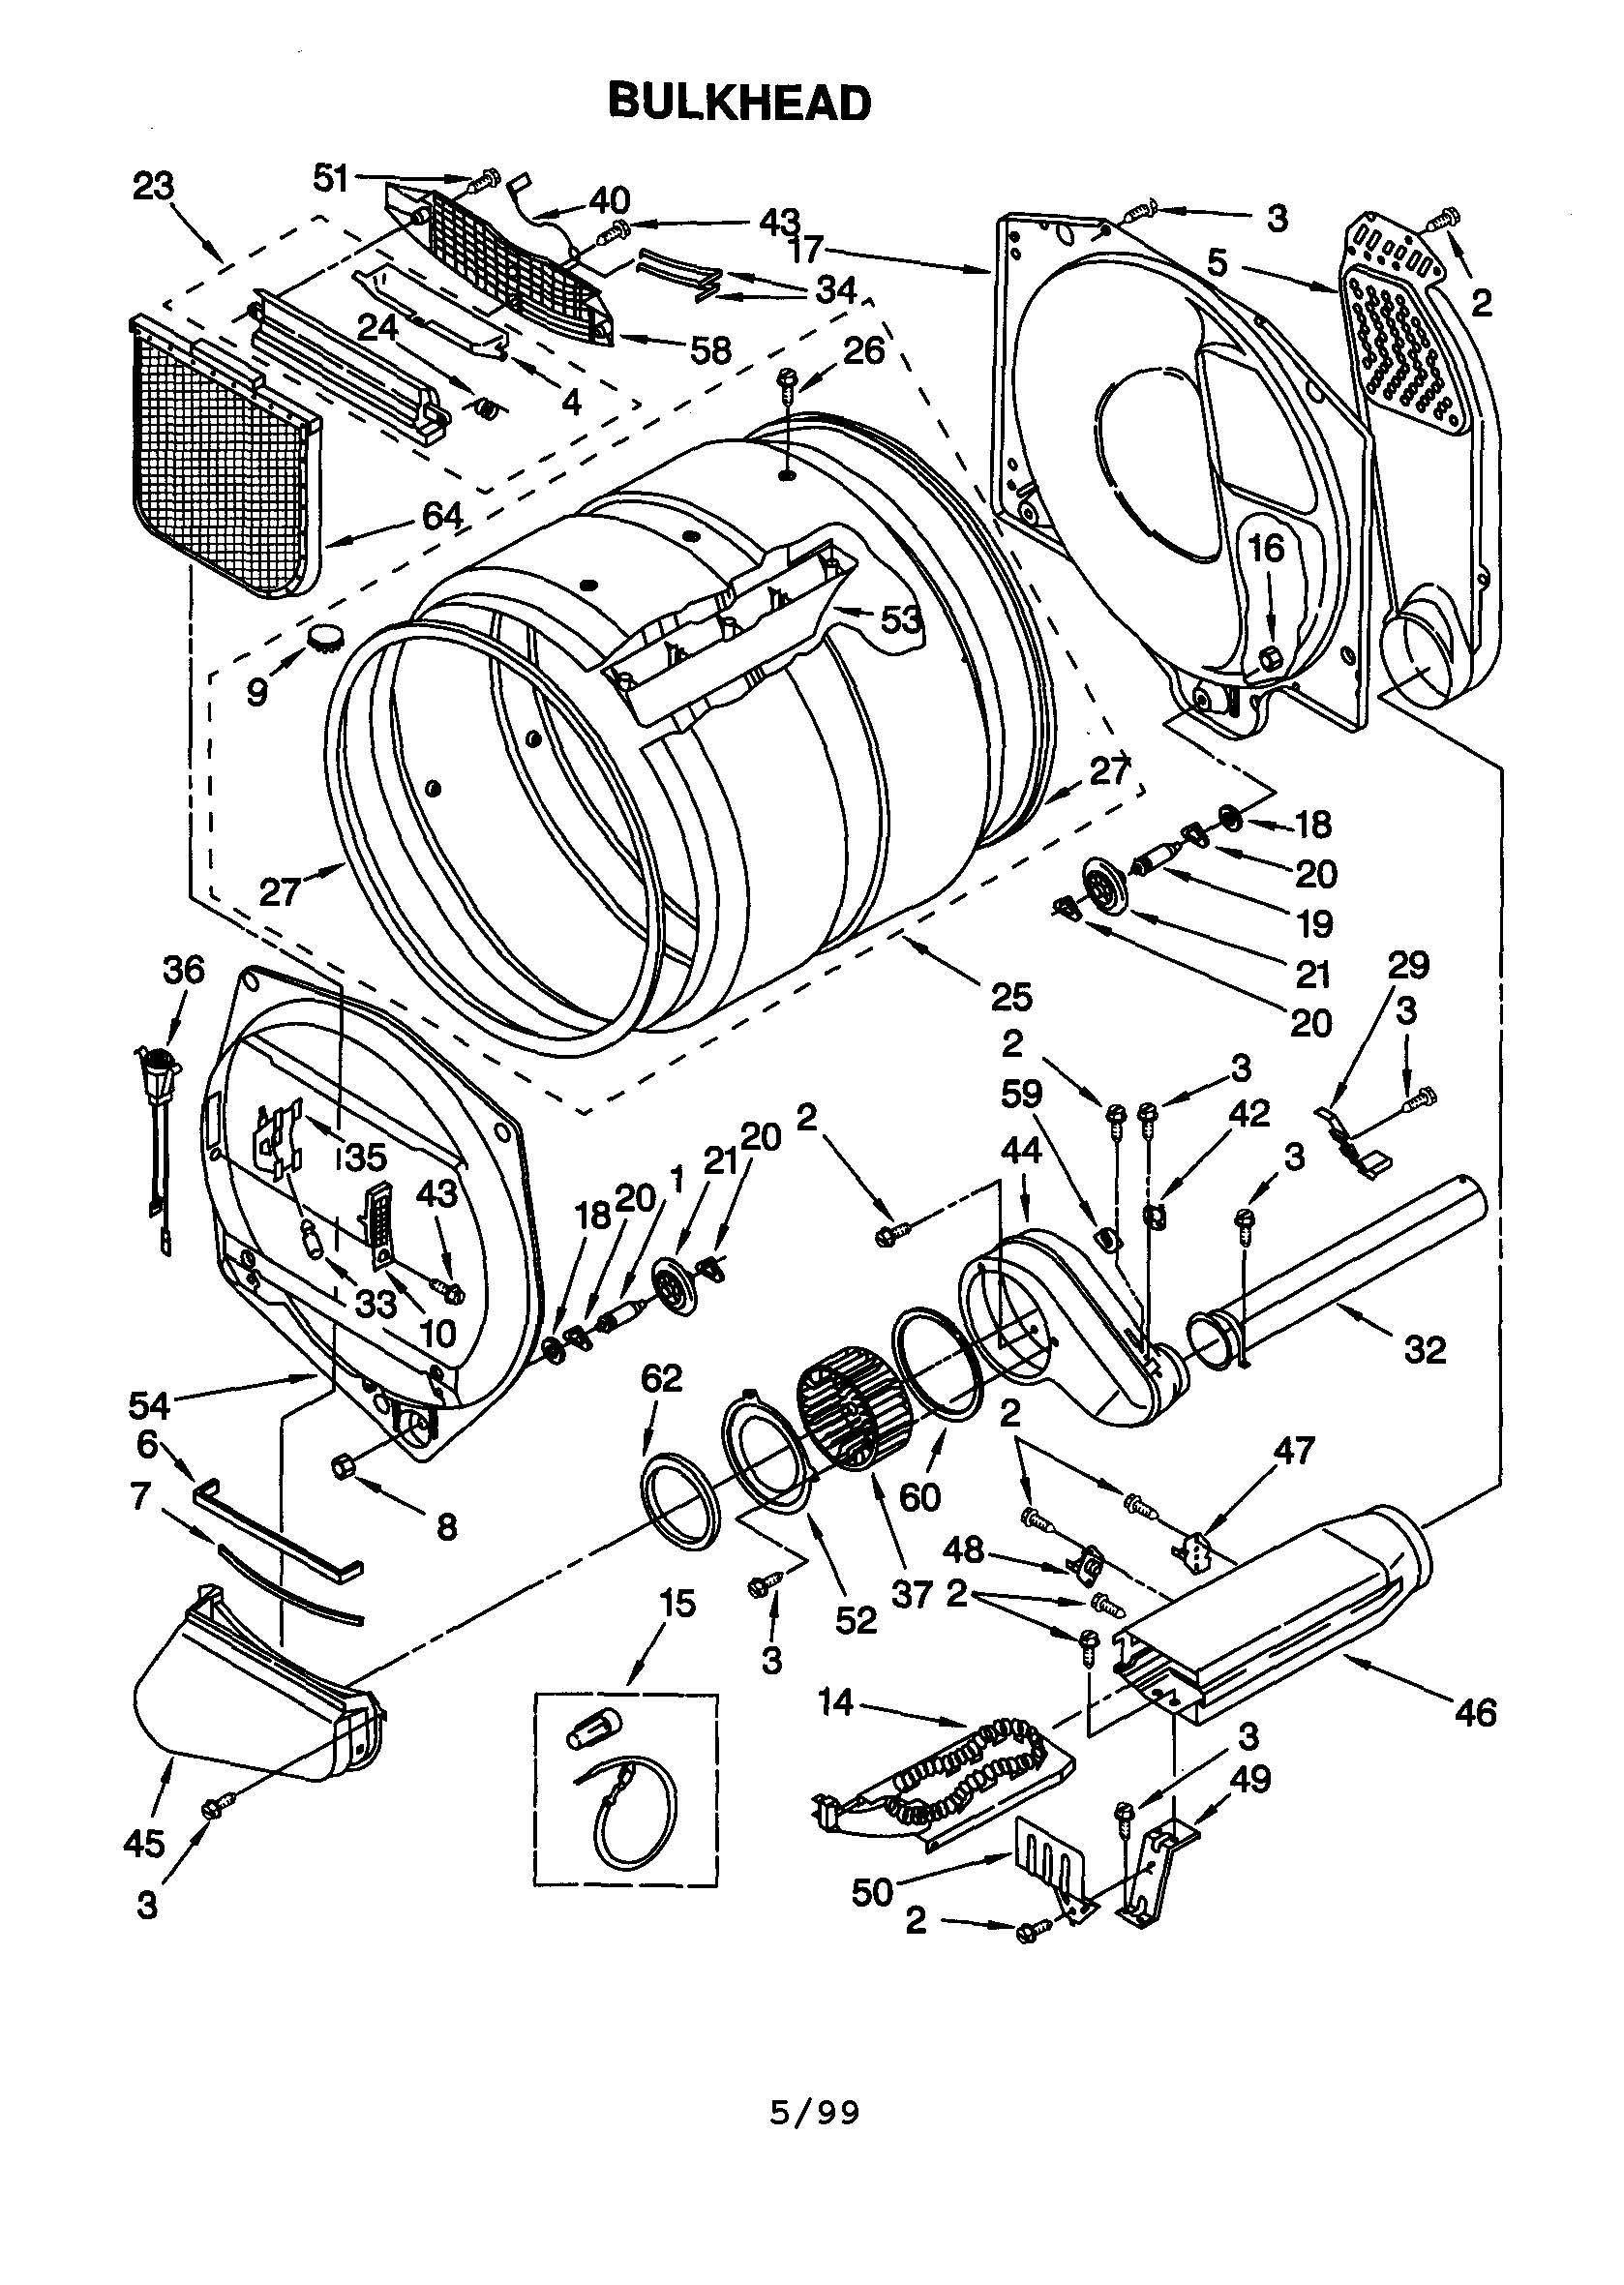 I Have A Kenmore Electric Dryer Model 110 60912990 I Want To Check The Heating Element  Where Is